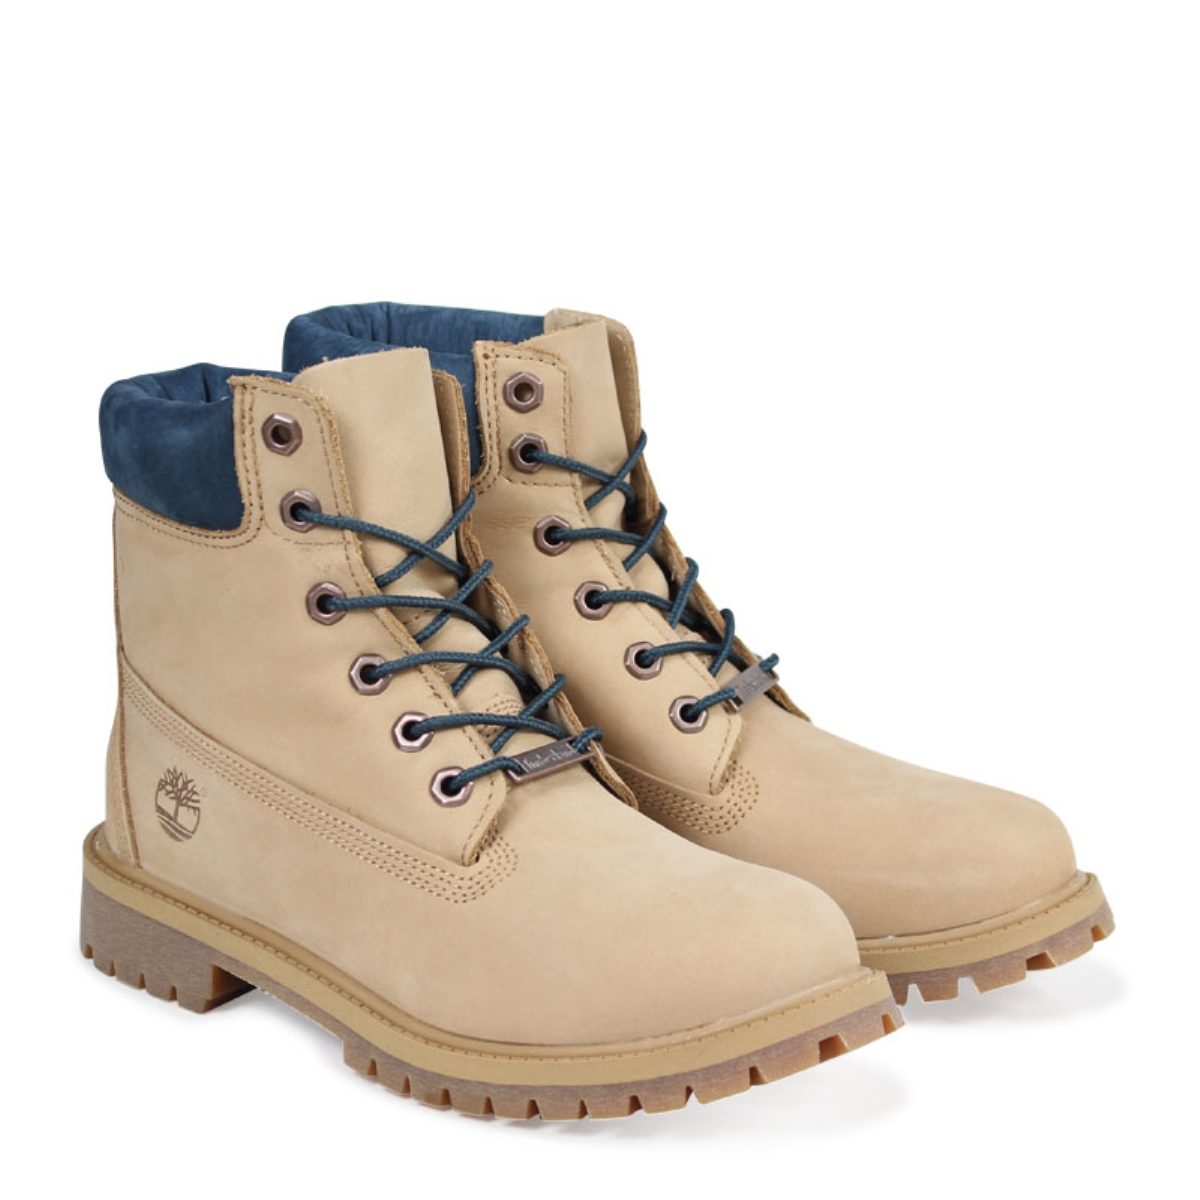 a1aad704ba0 Timberland JUNIOR 6INCH WATERPROOF BOOT Timberland Lady's boots 6 inches  kids A1PLO W Wise waterproofing beige [load planned Shinnyu load in ...